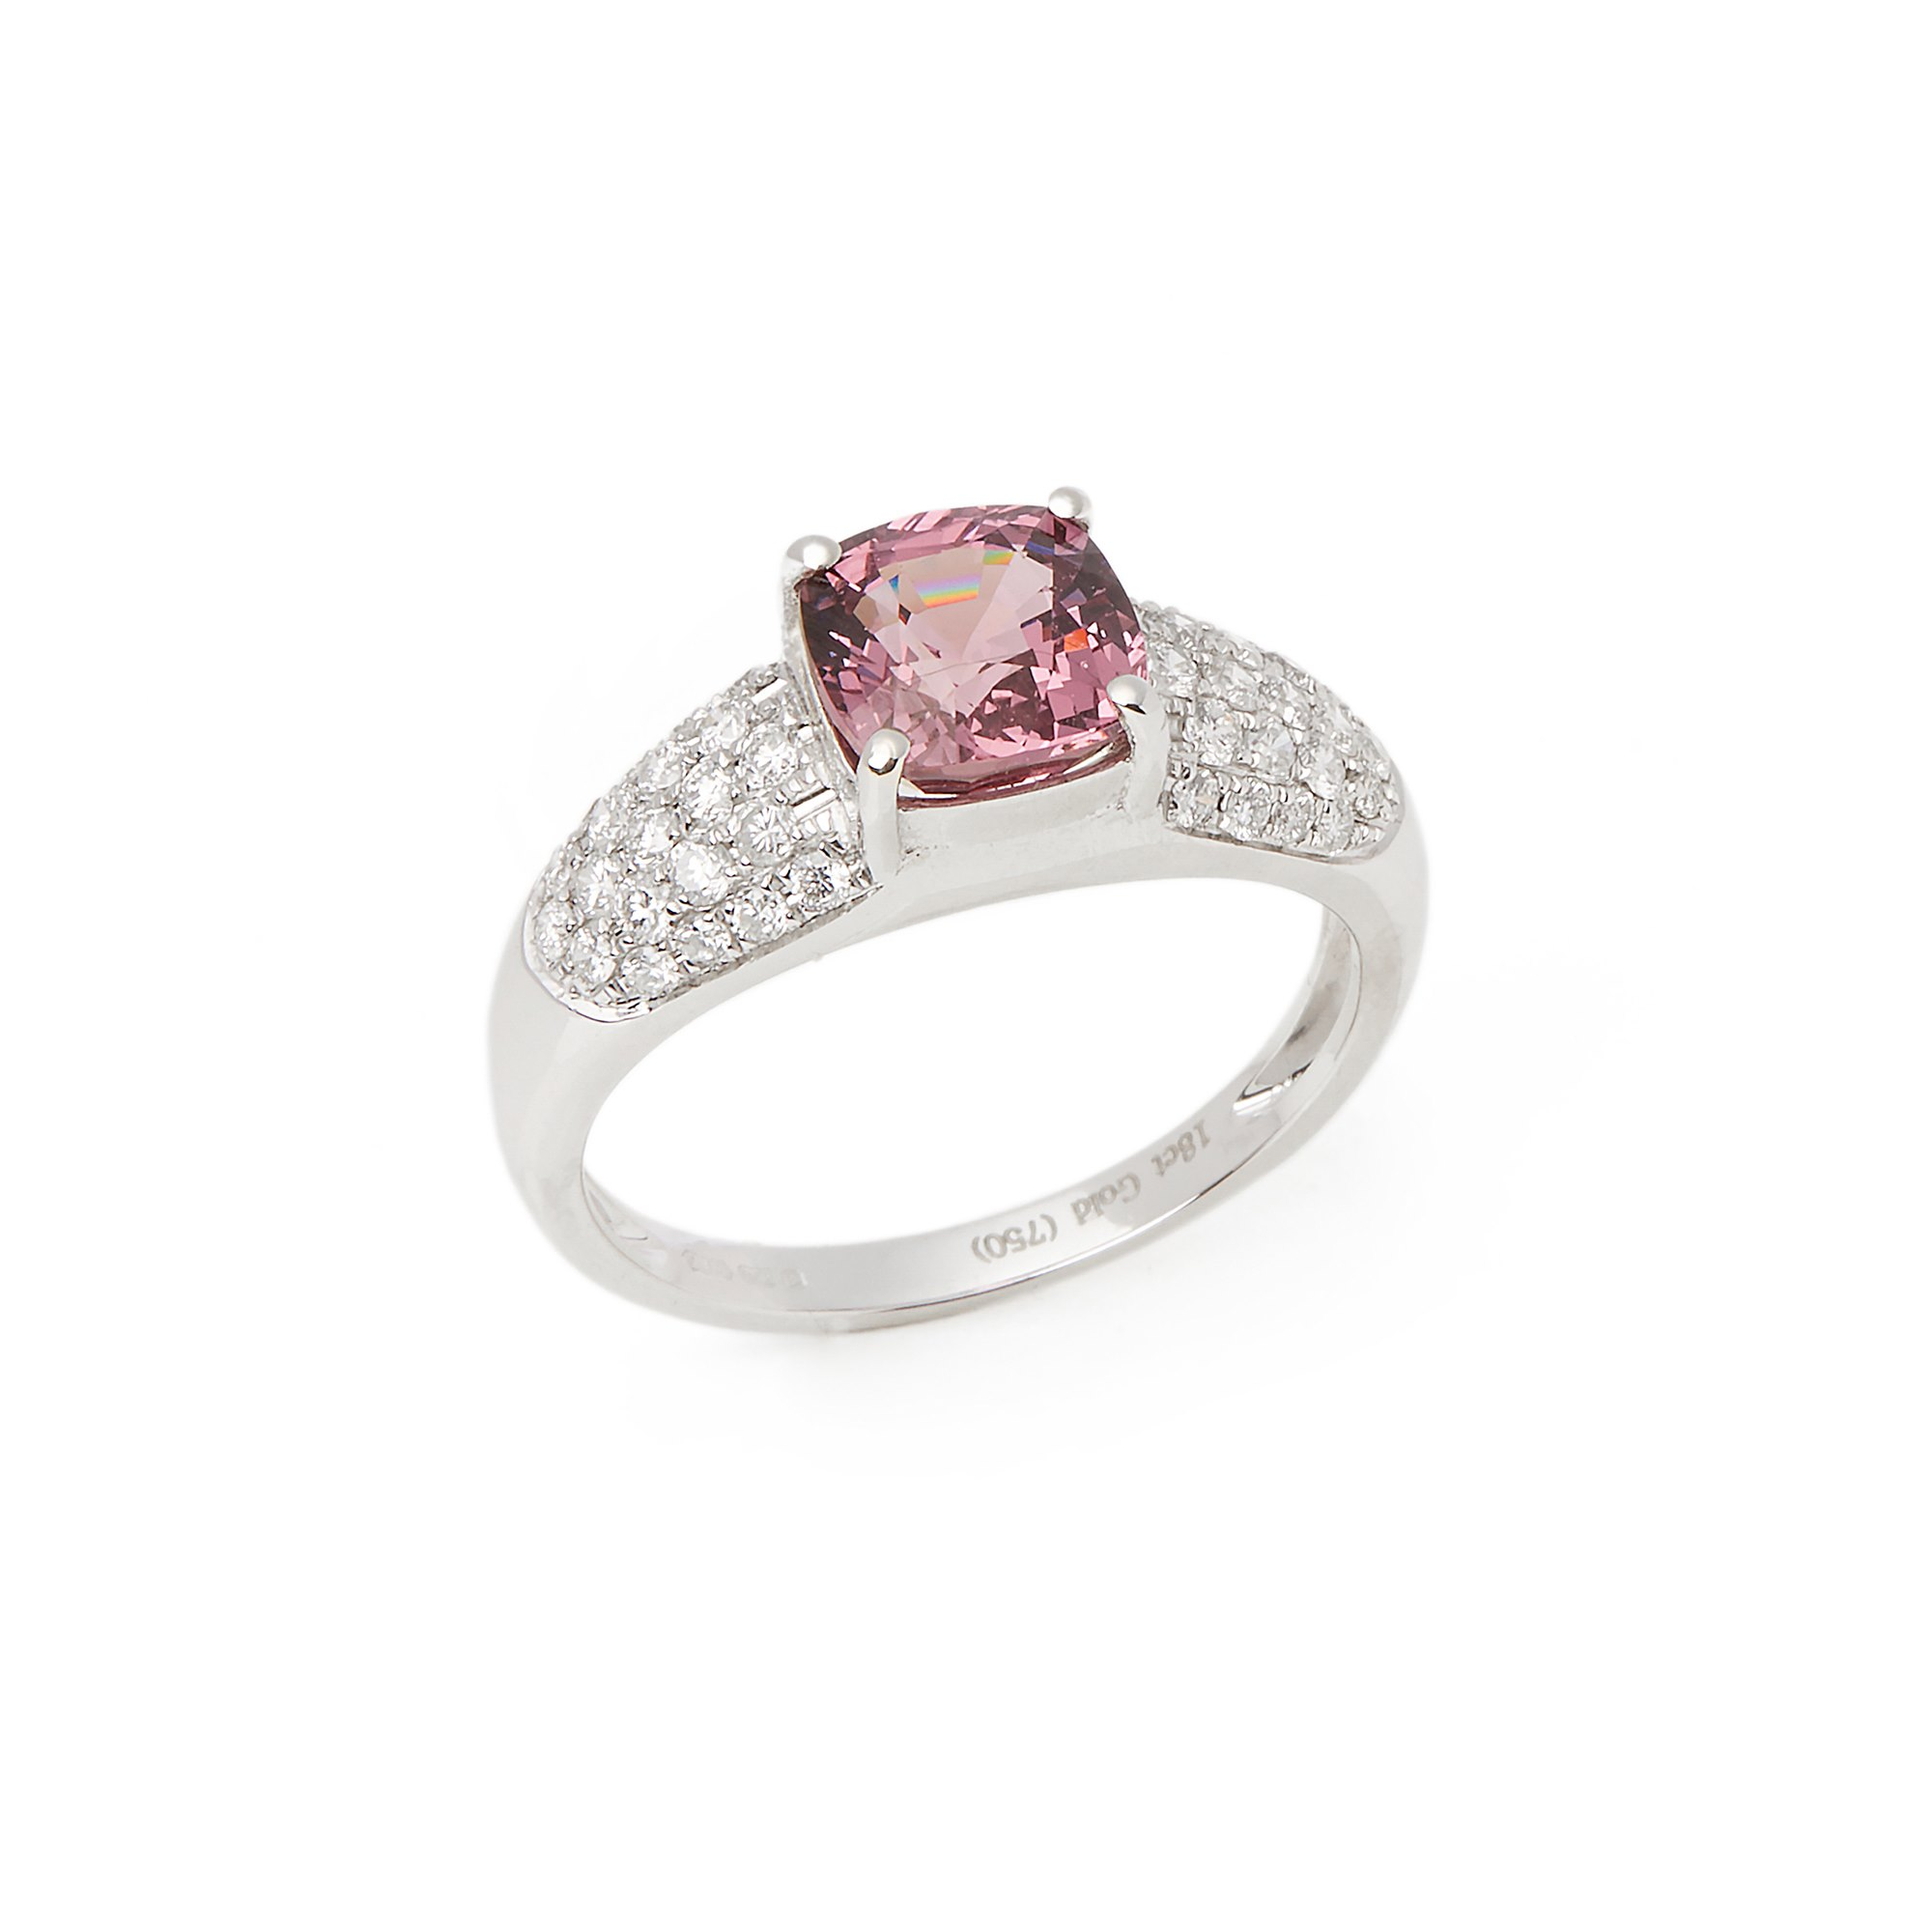 David Jerome 18ct White Gold Spinel and Diamond Dress Ring